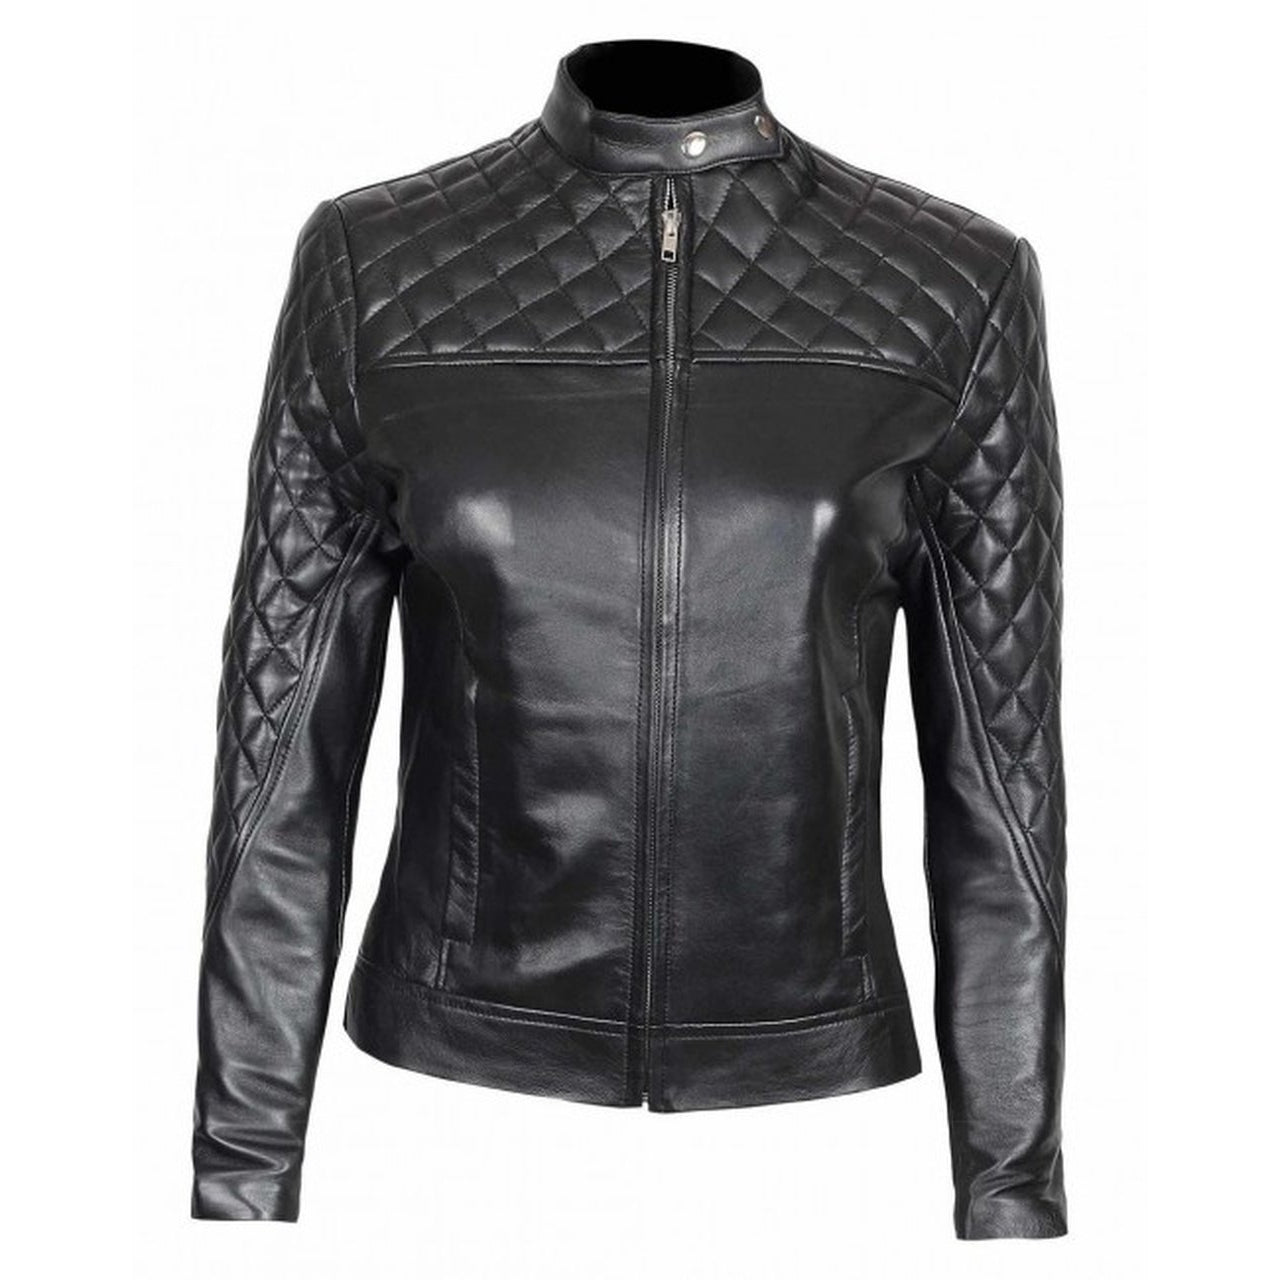 Slim Fit Quilted Leather Jacket For Women - Leather Jacket